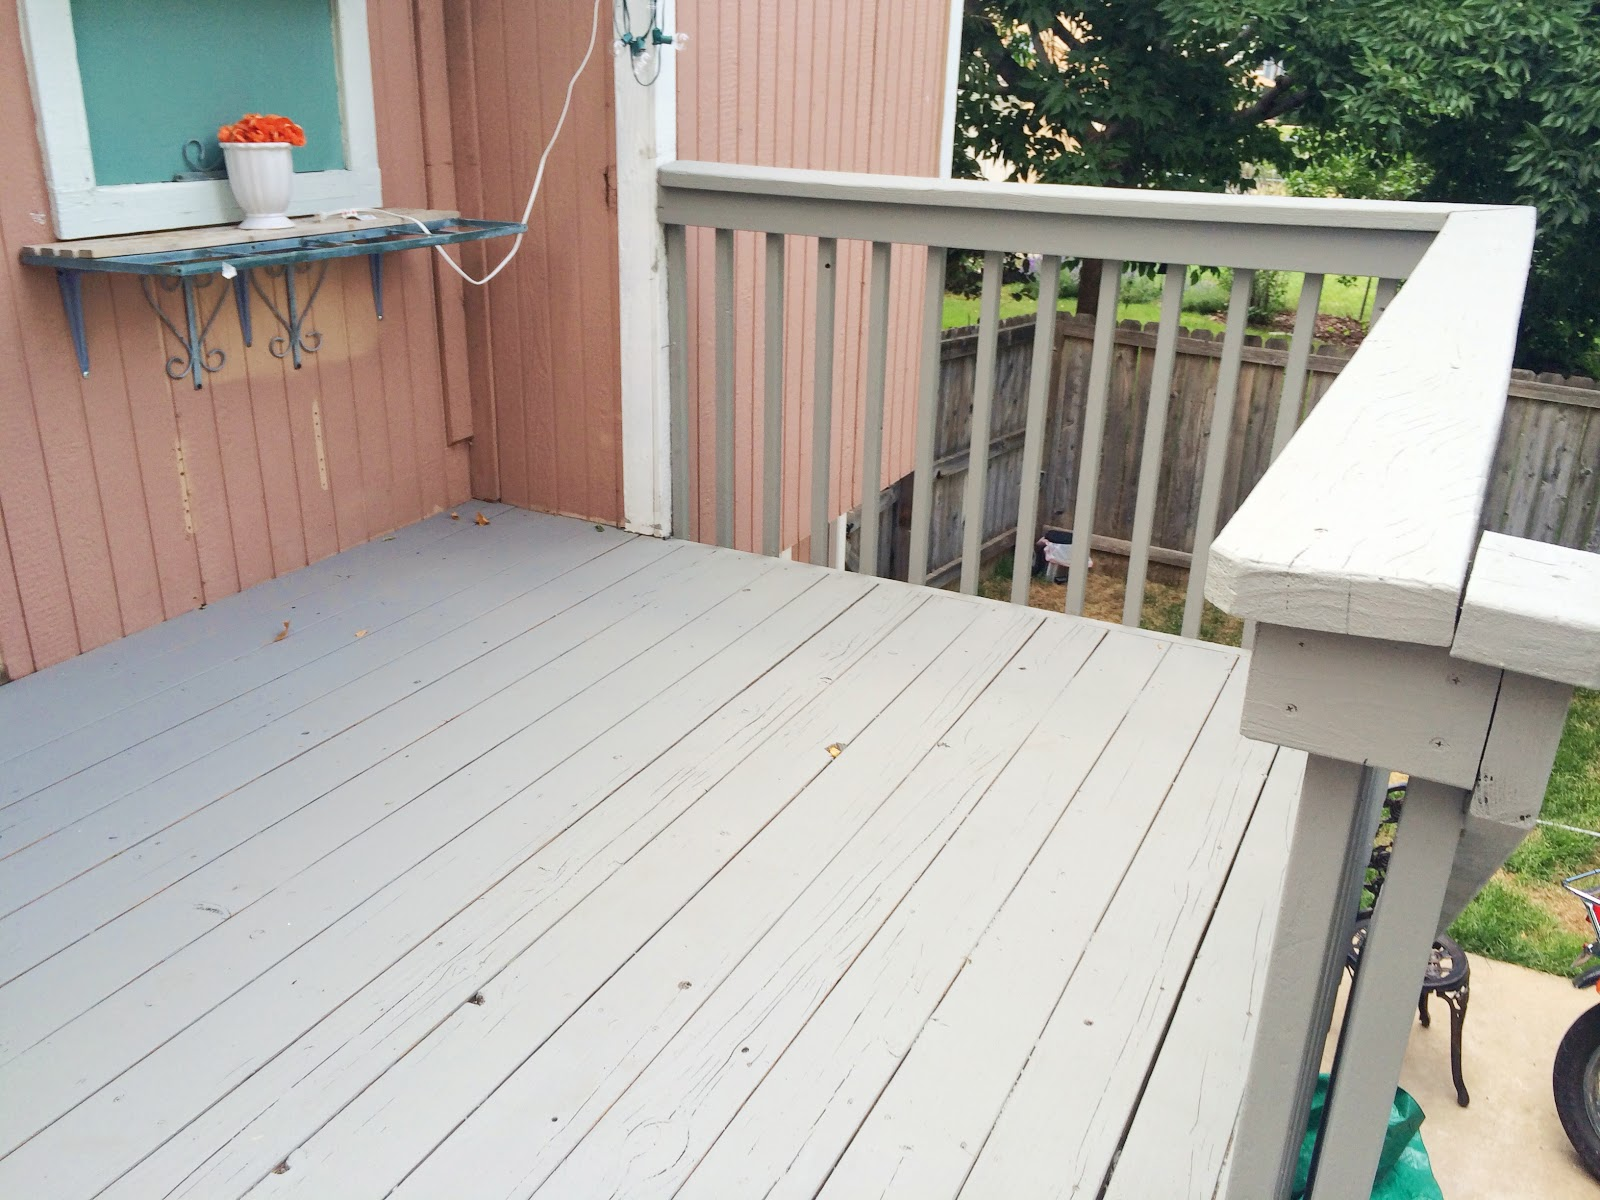 Behr Deck Over | Home Depot Behr Deck Over | Behr Deck Over Colors